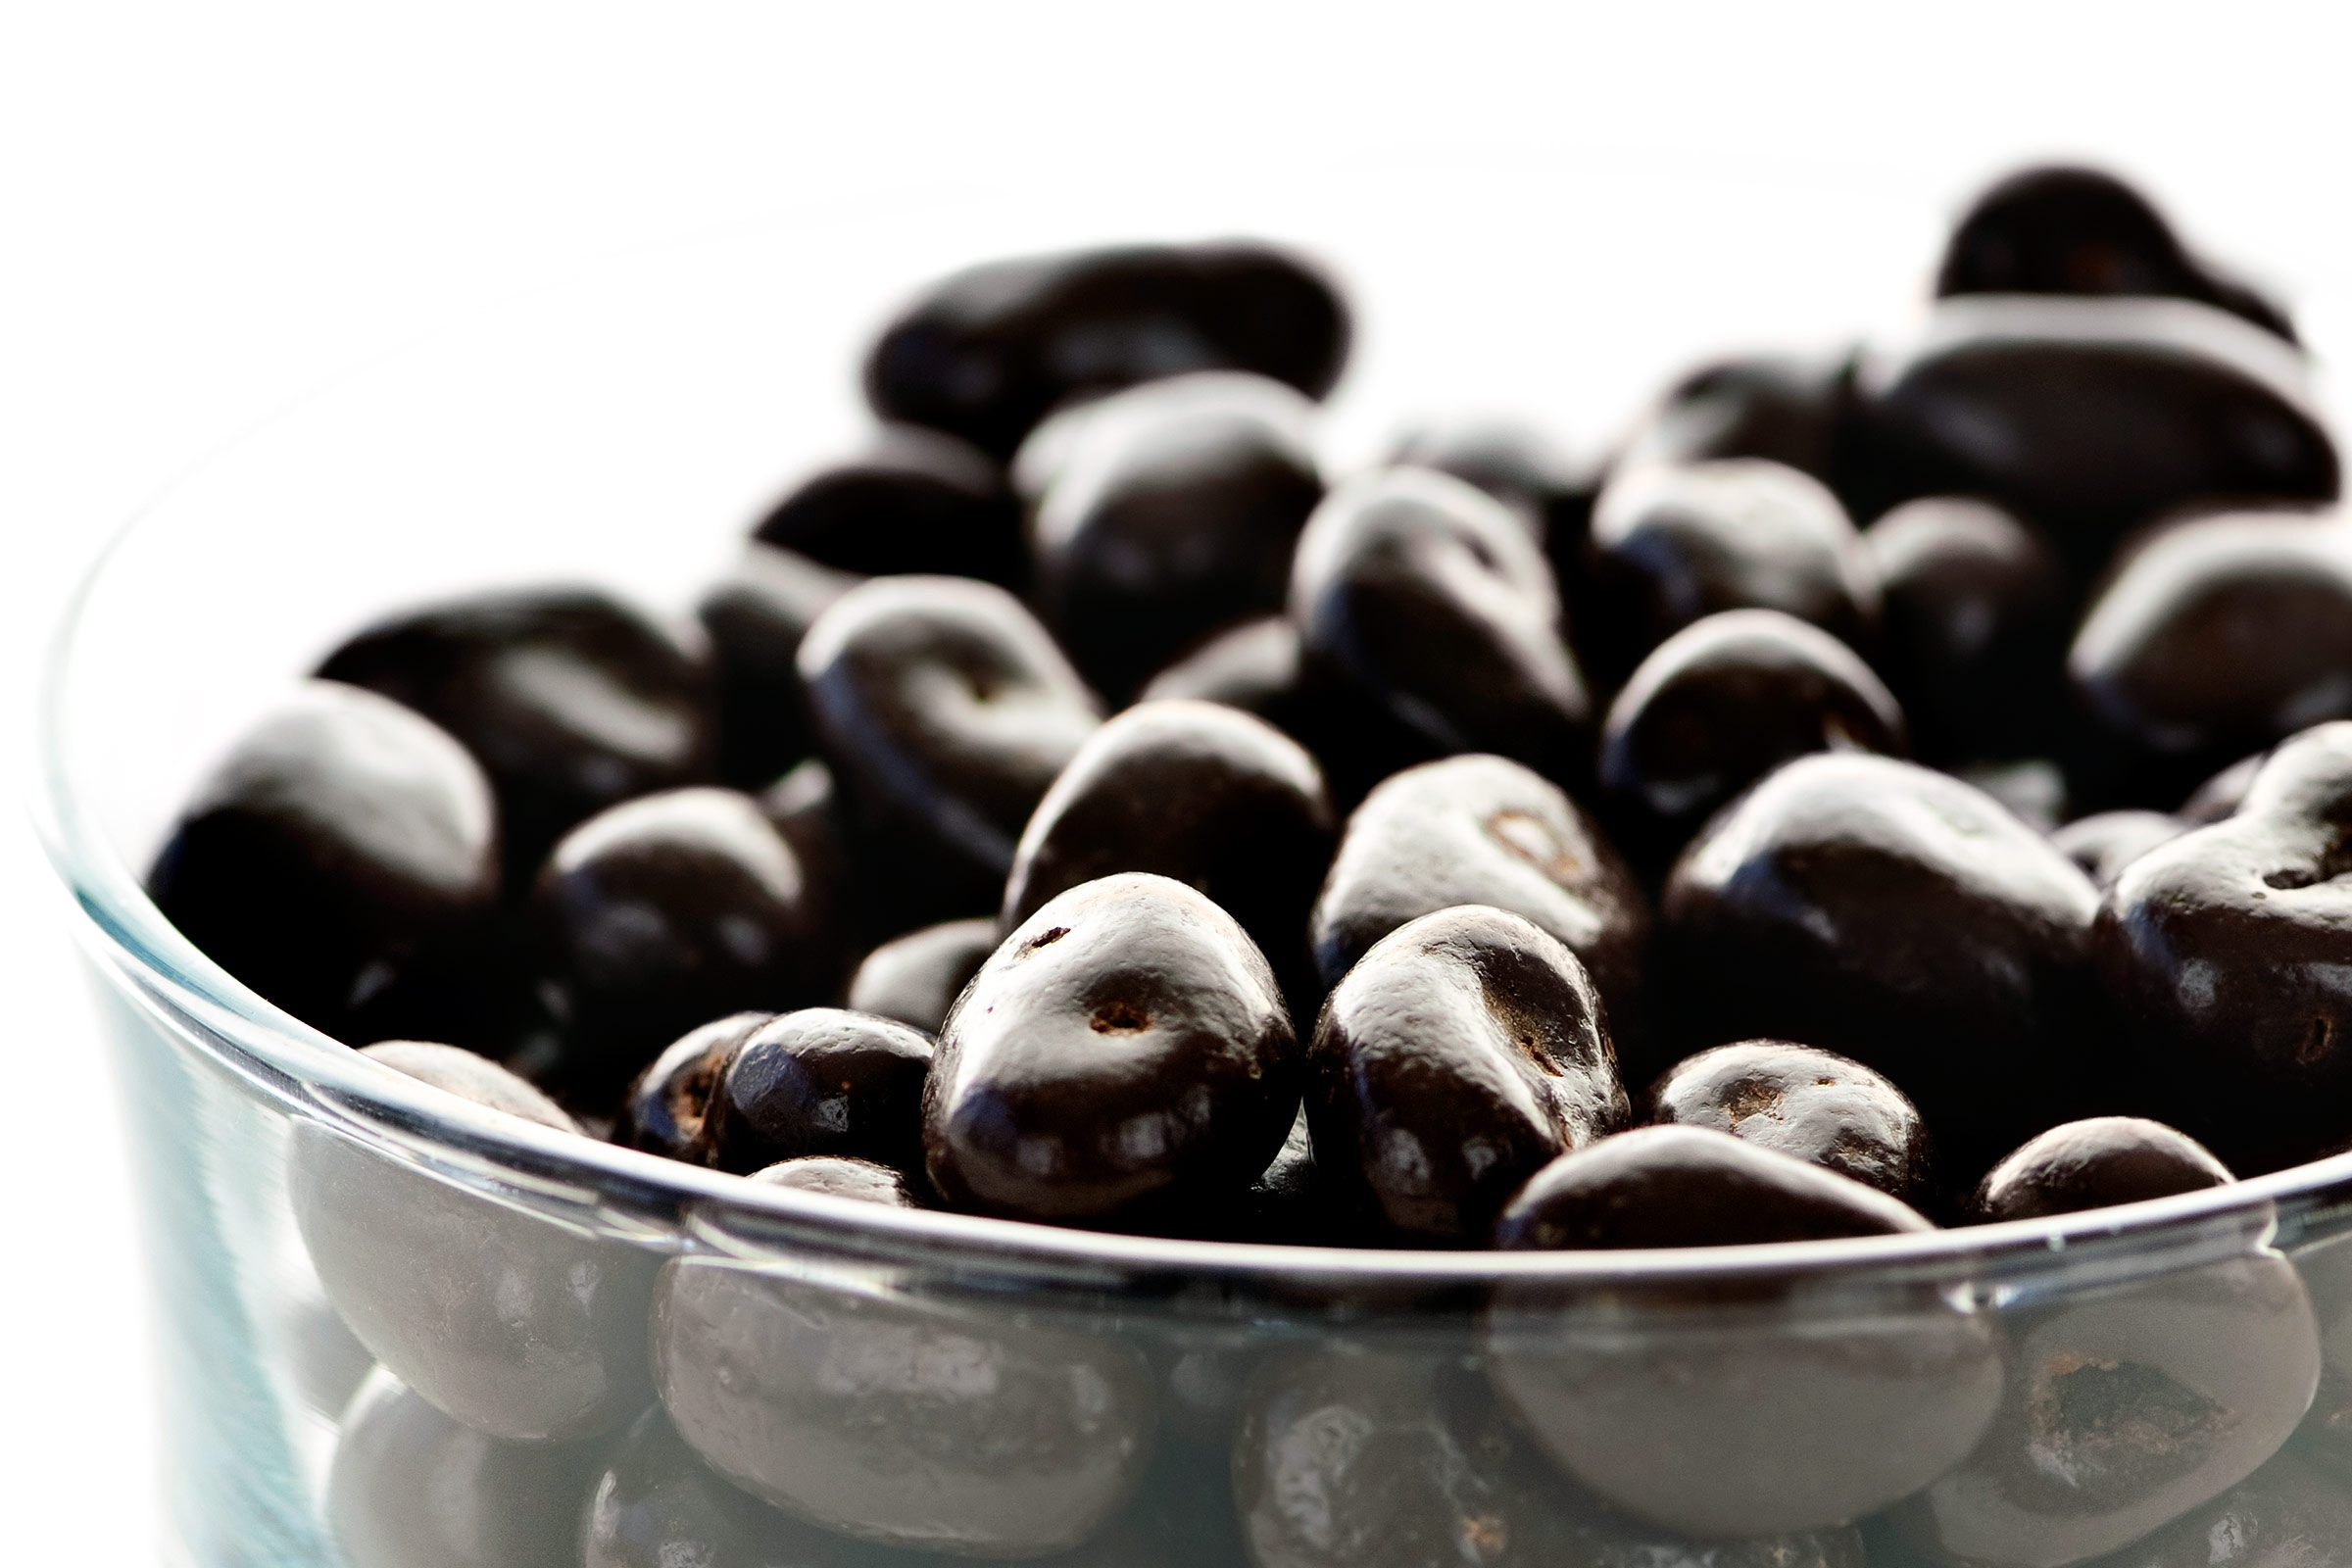 Chocolate-Covered Raisins: Boost Antioxidants and Fiber